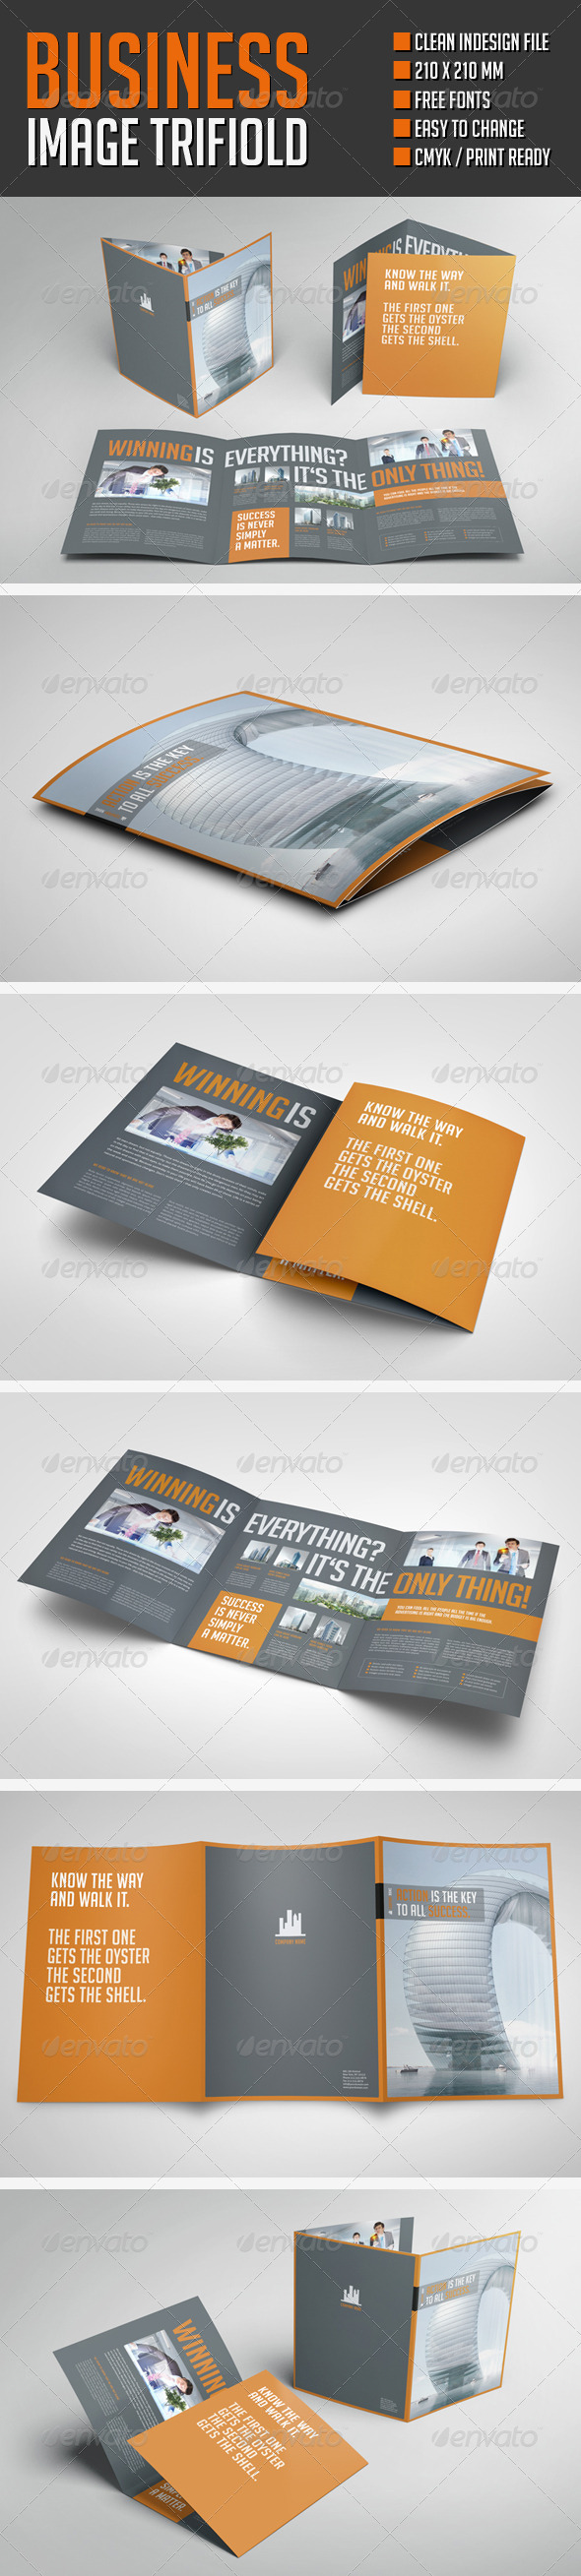 GraphicRiver Business Image Trifold Brochure 8625704